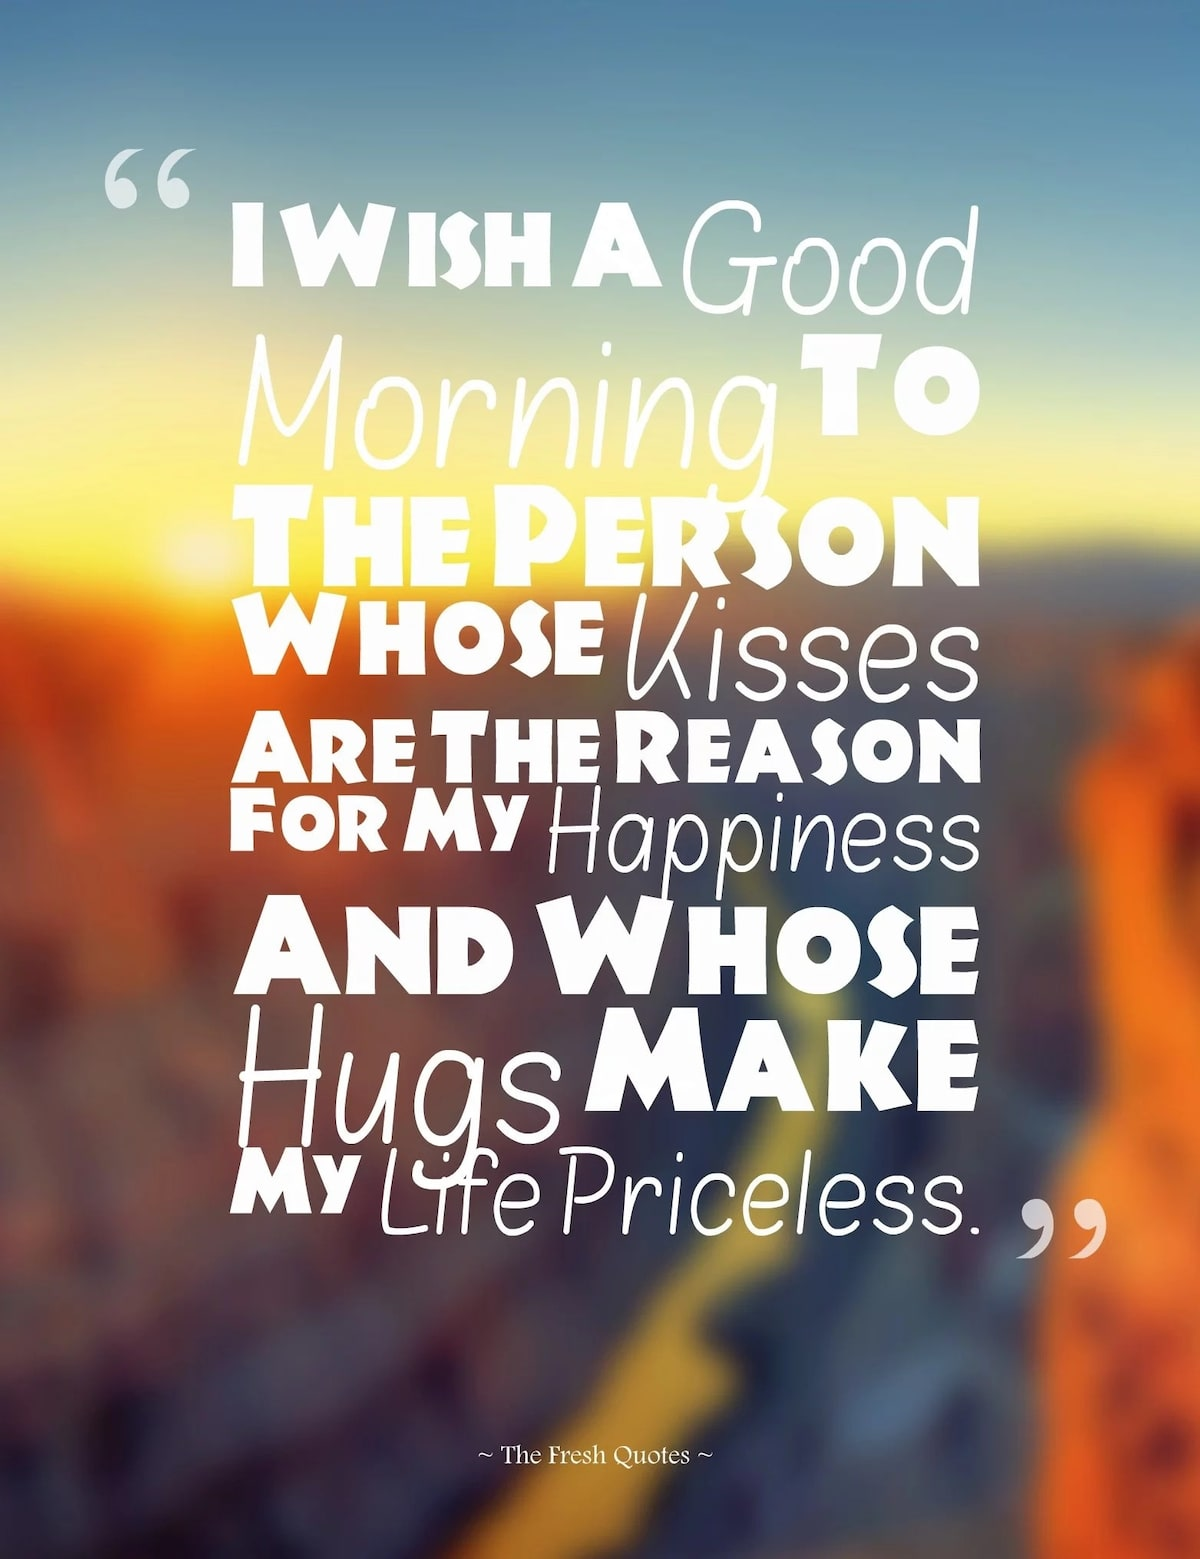 Inspirational Good Morning Love Quotes For Her And Him Yen Com Gh